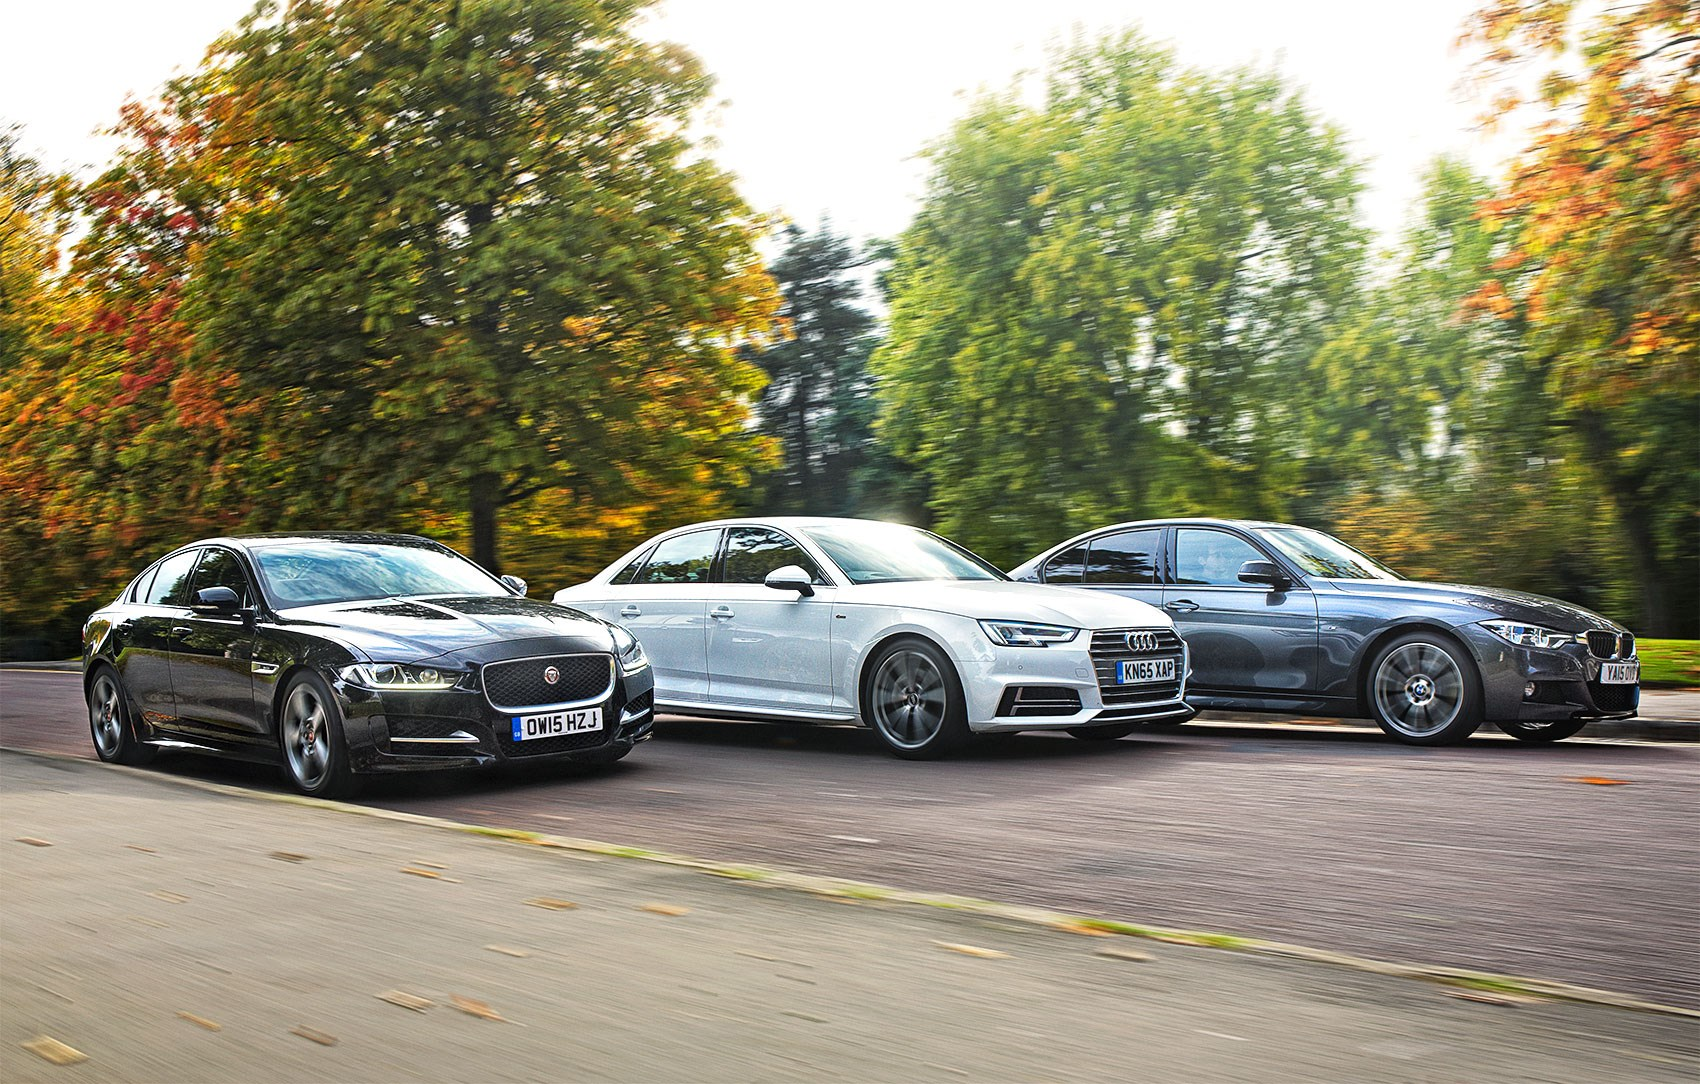 The New Audi A4 Takes On BMWu0027s Updated 3 Series And Jaguaru0027s XE ...